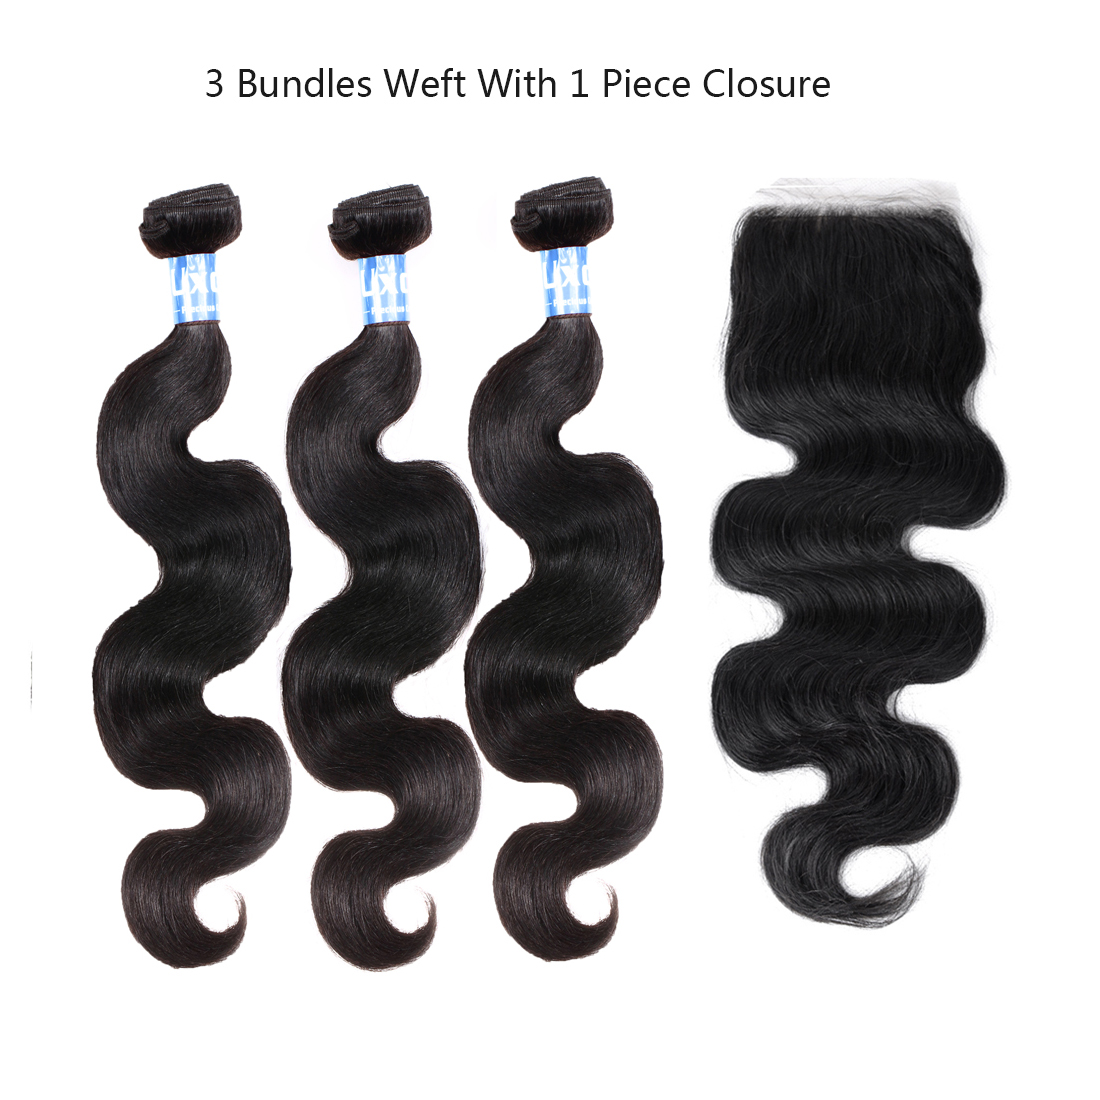 "12""12""12"" 3 Bundles Hair Weft With 10"" Free Part Closure Brazilian 6A Body Wave Human Hair Extension"